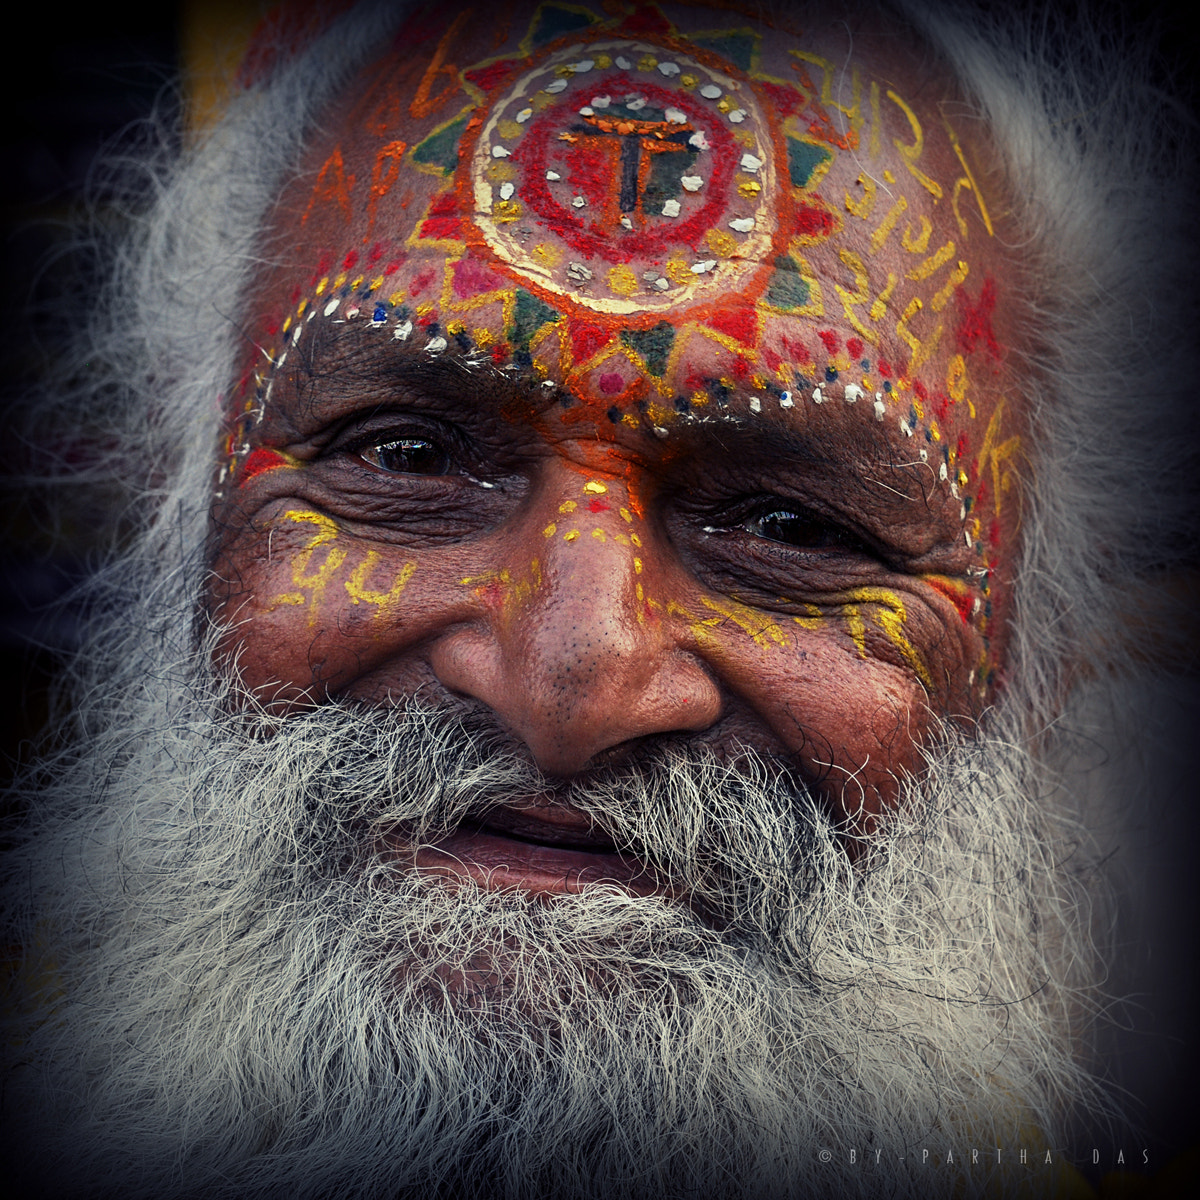 Photograph face8 by Partha Das on 500px